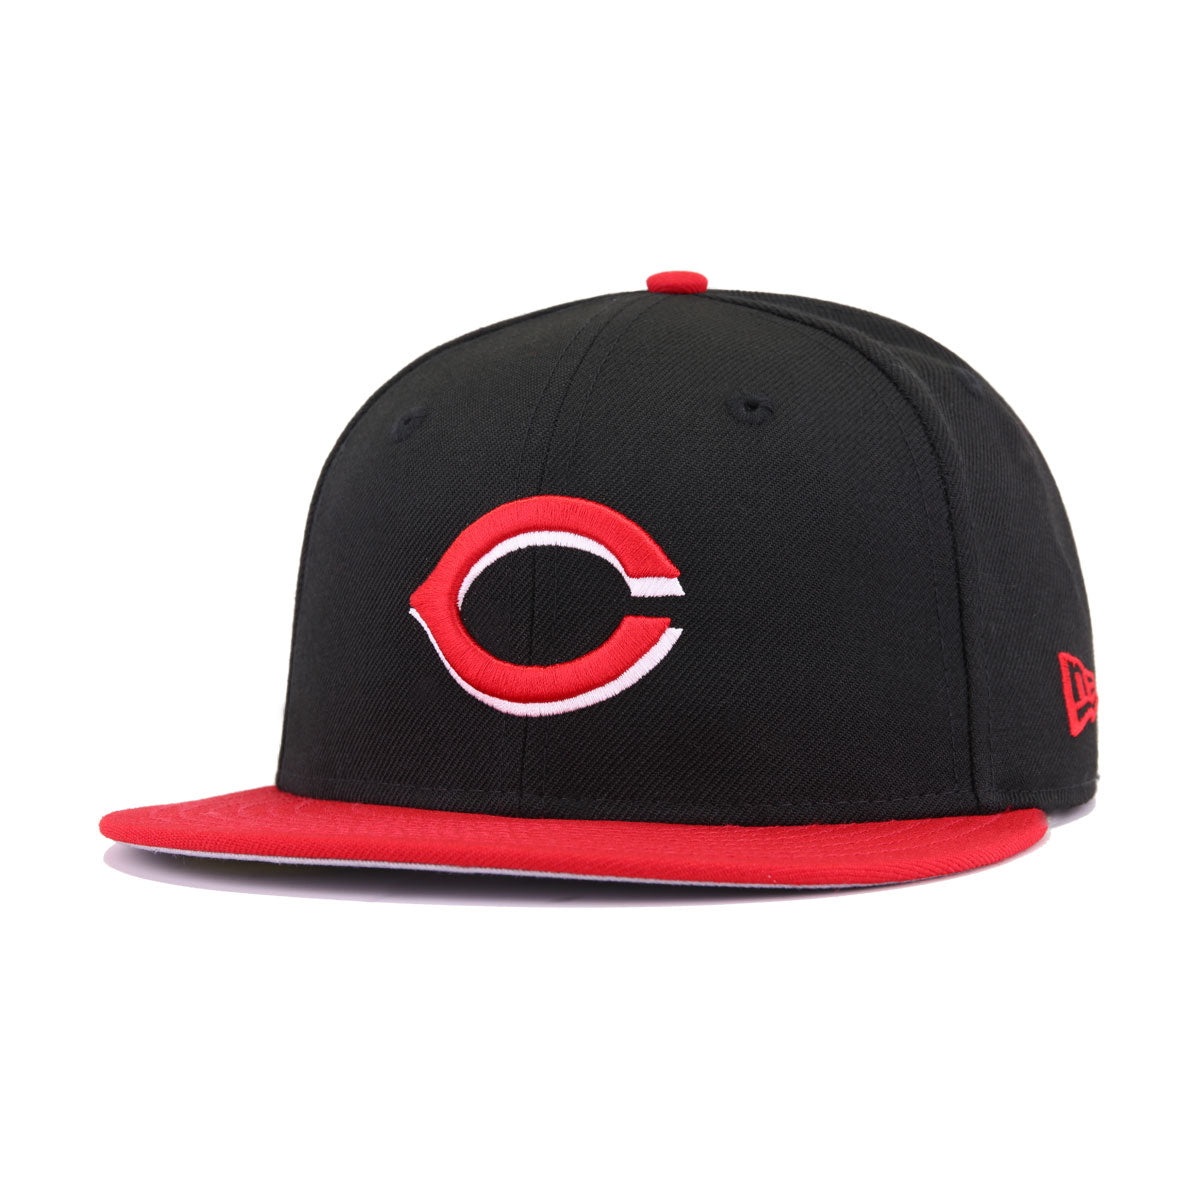 big sale 25990 30d25 Cincinnati Reds Black Scarlet 1990 World Series Cooperstown New Era 59Fifty  Fitted